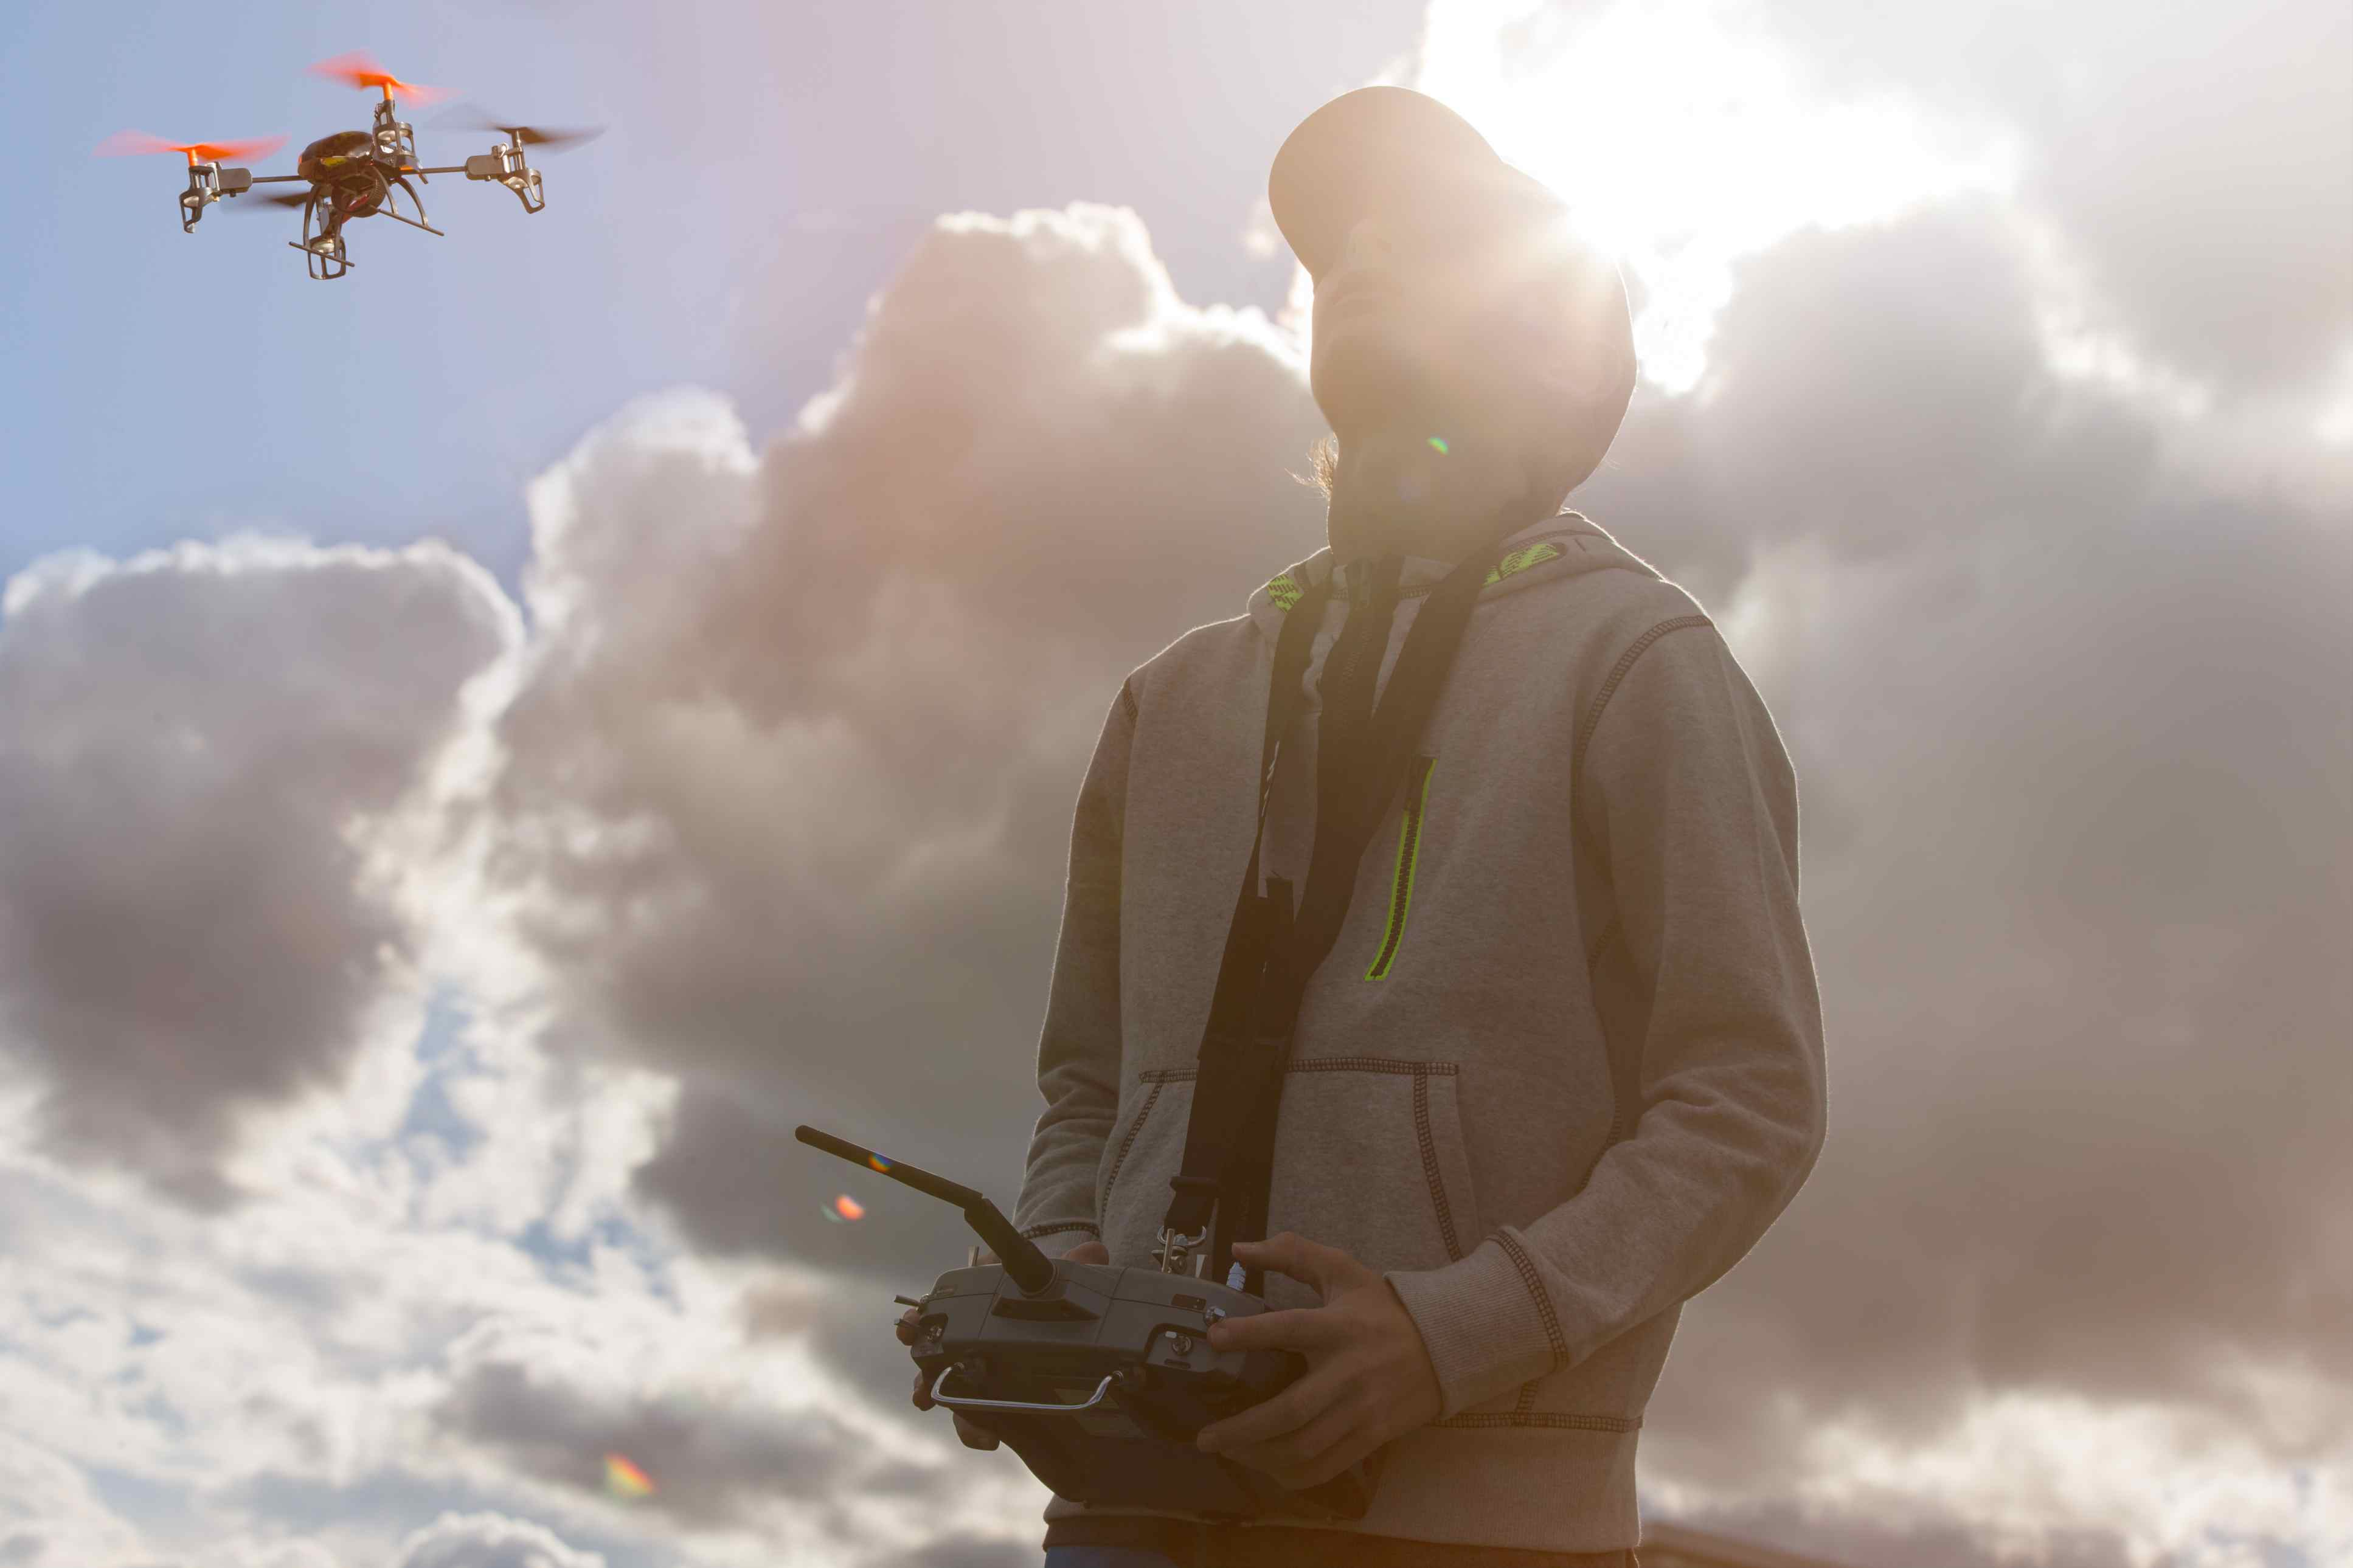 Flying your drone does insurance need to know